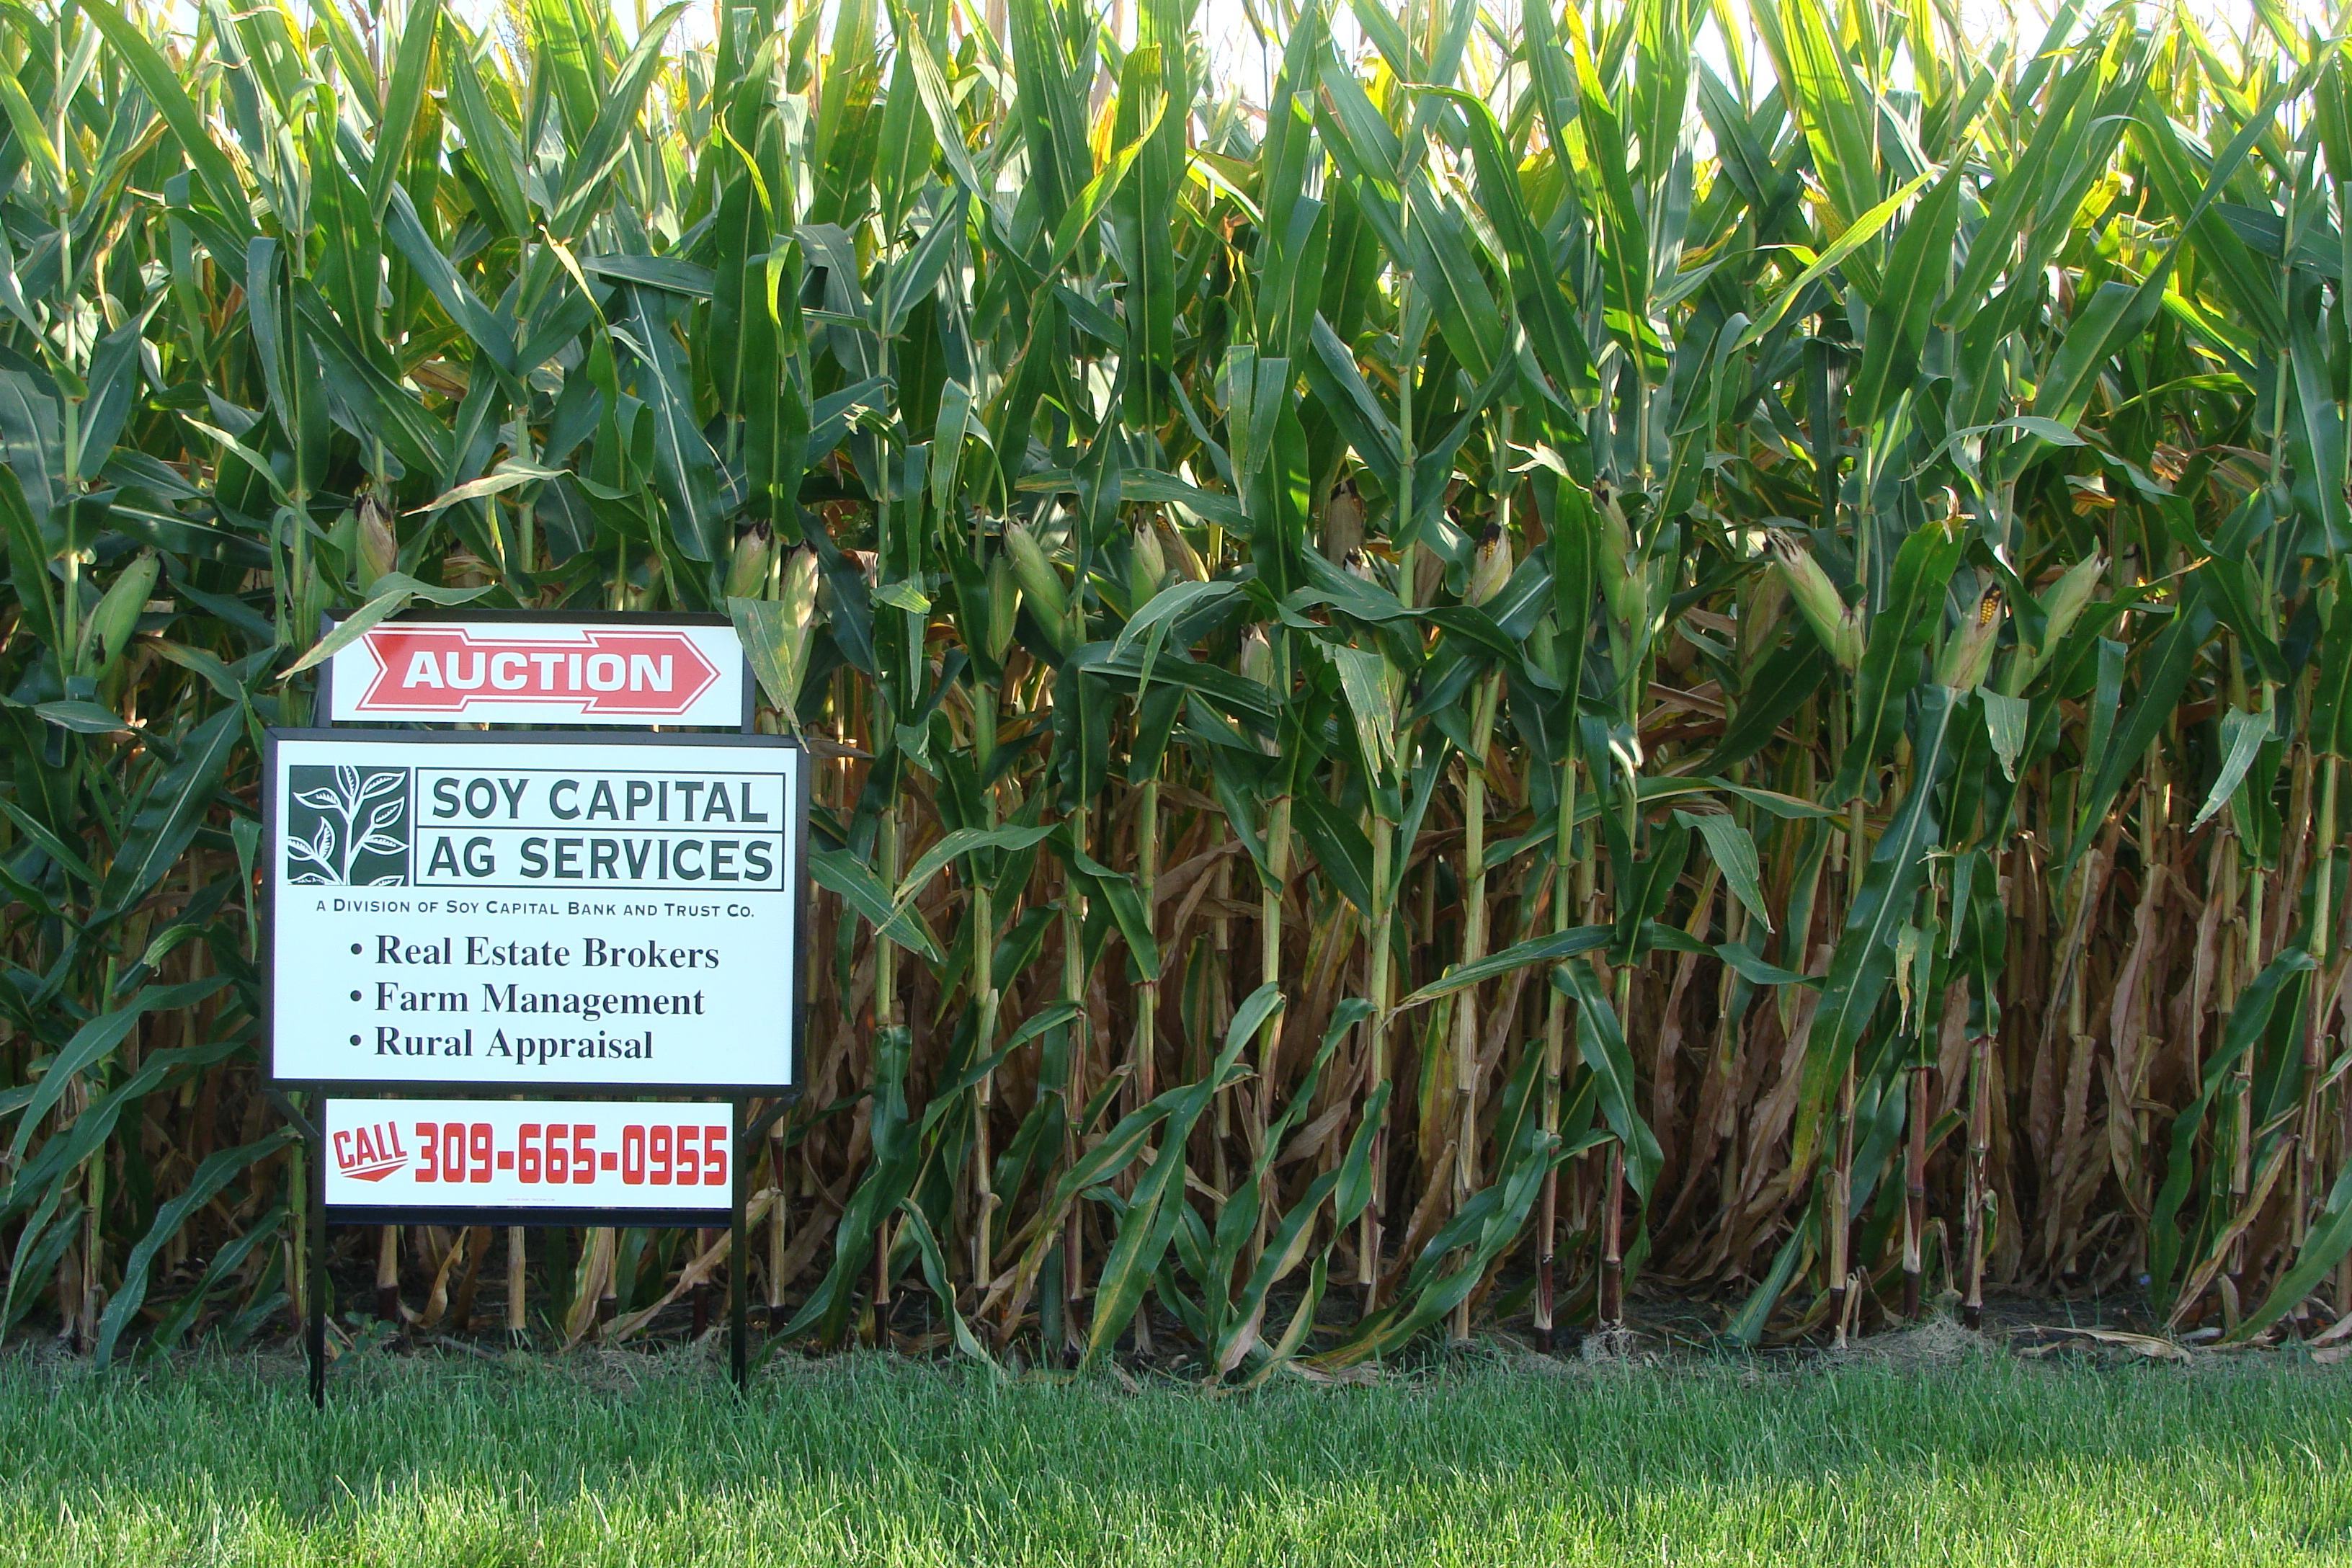 Picture of for sale sign on Streid farm.